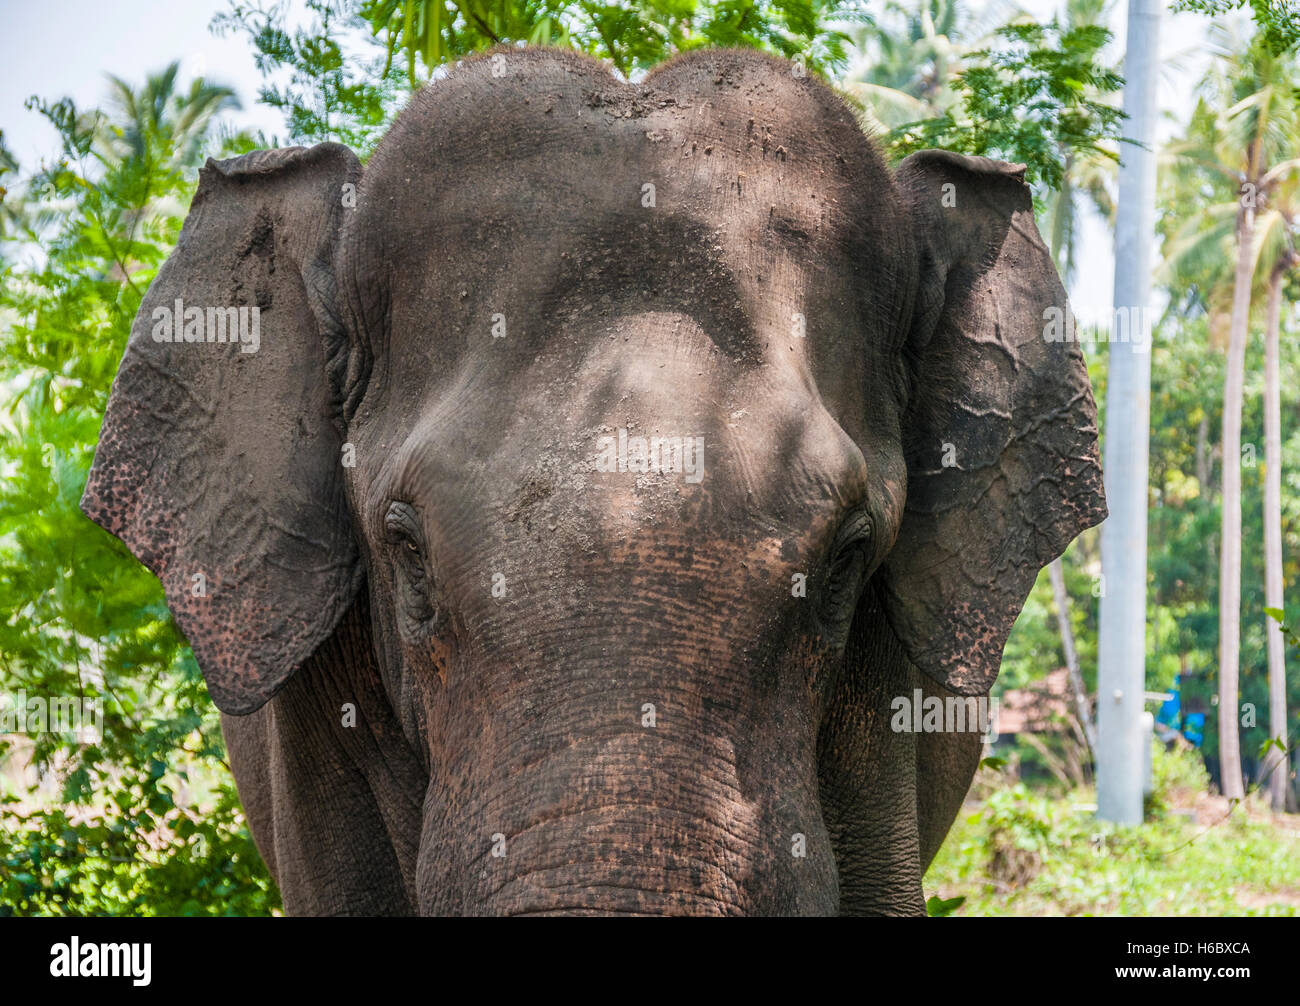 Elephant Sanctuary Kerala Stock Photos & Elephant ...